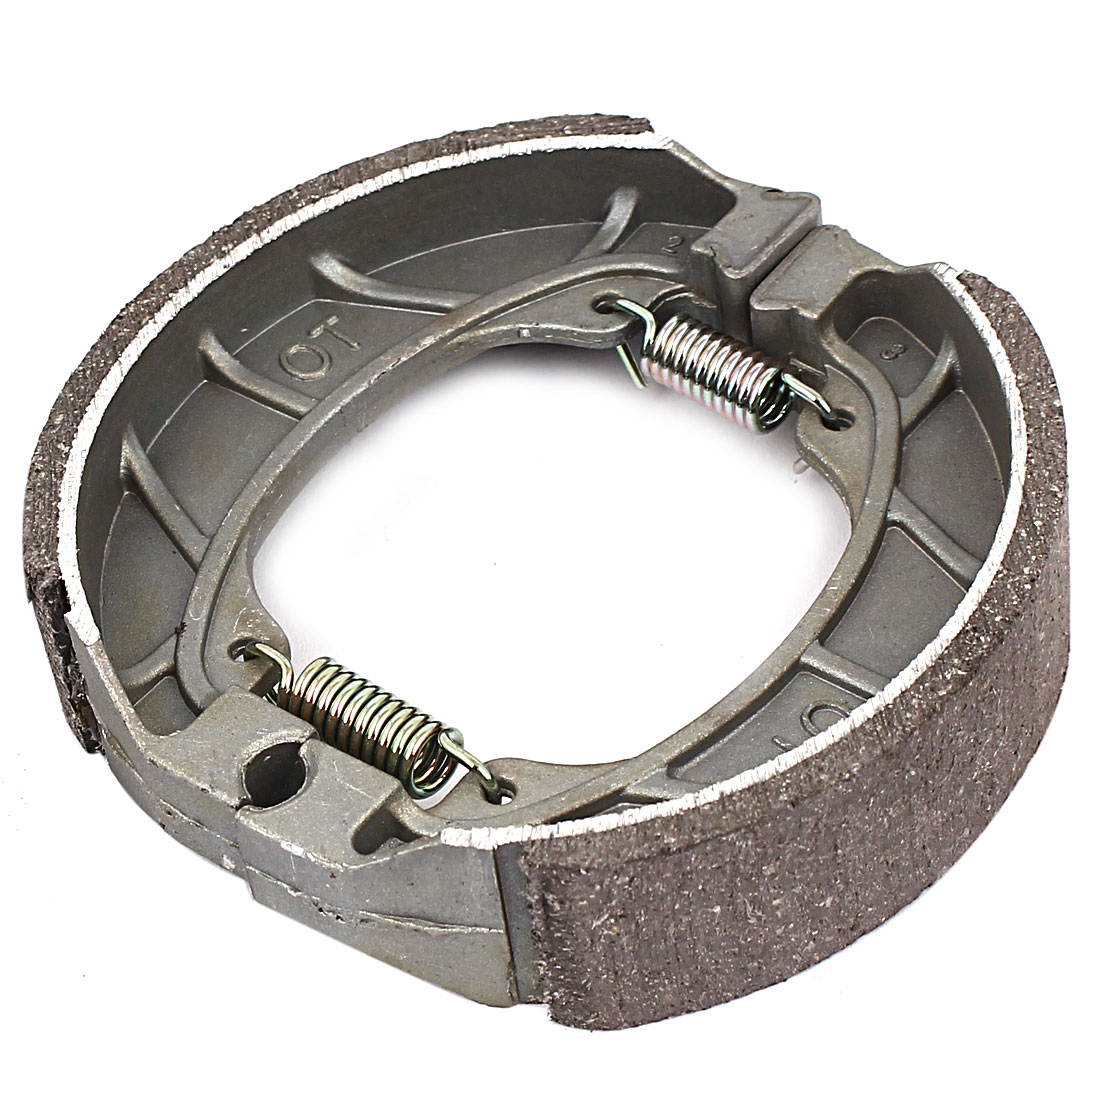 Metal Spring Brake Shoes Bicycle Motorcycle Drum Pad 4 Inch Dia